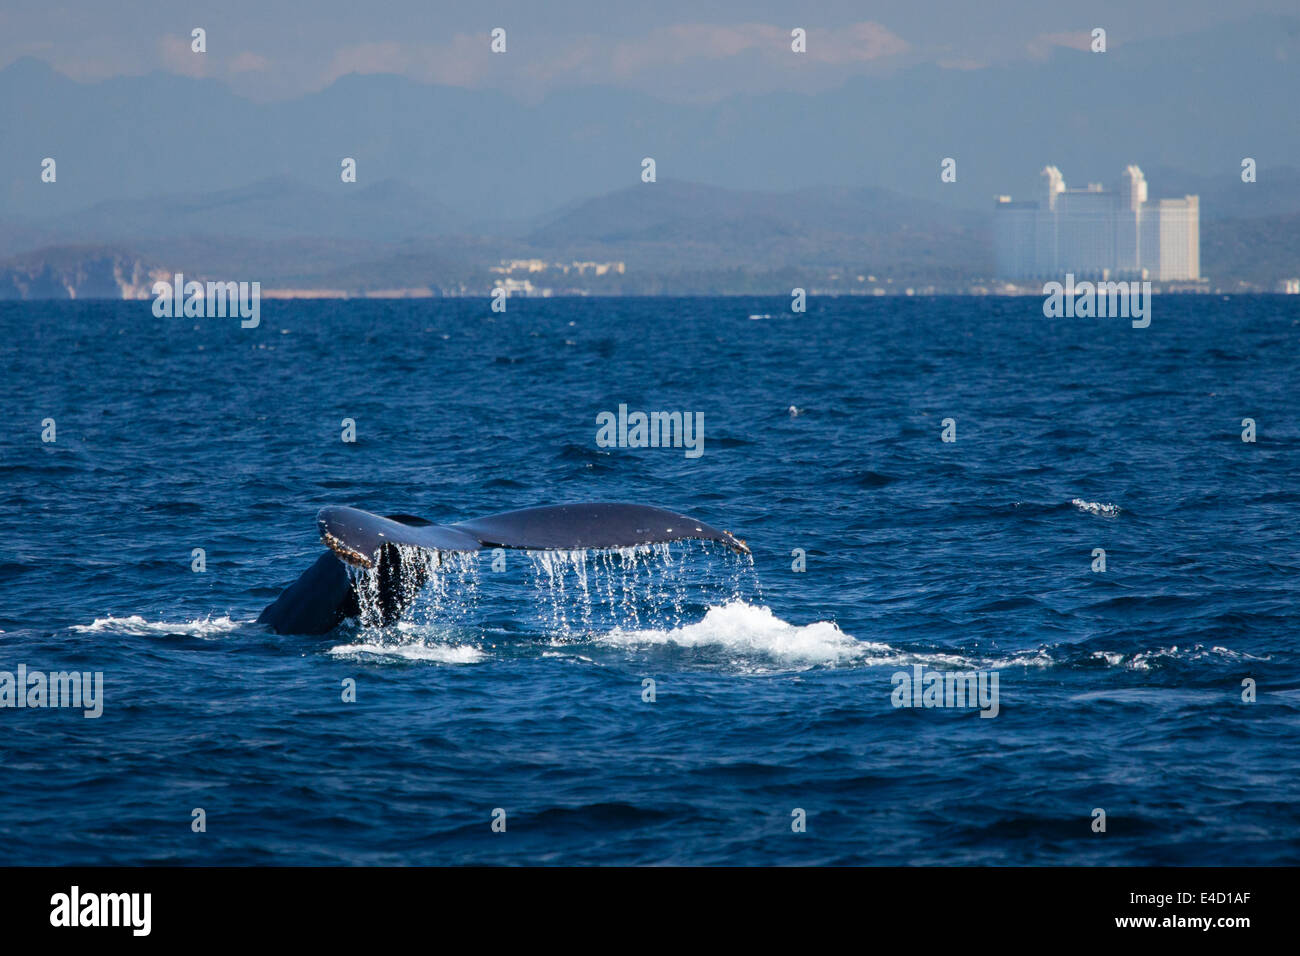 The tail of a humpback whale disappears into the ocean near Mazatlan, Sinaloa, Mexico. - Stock Image